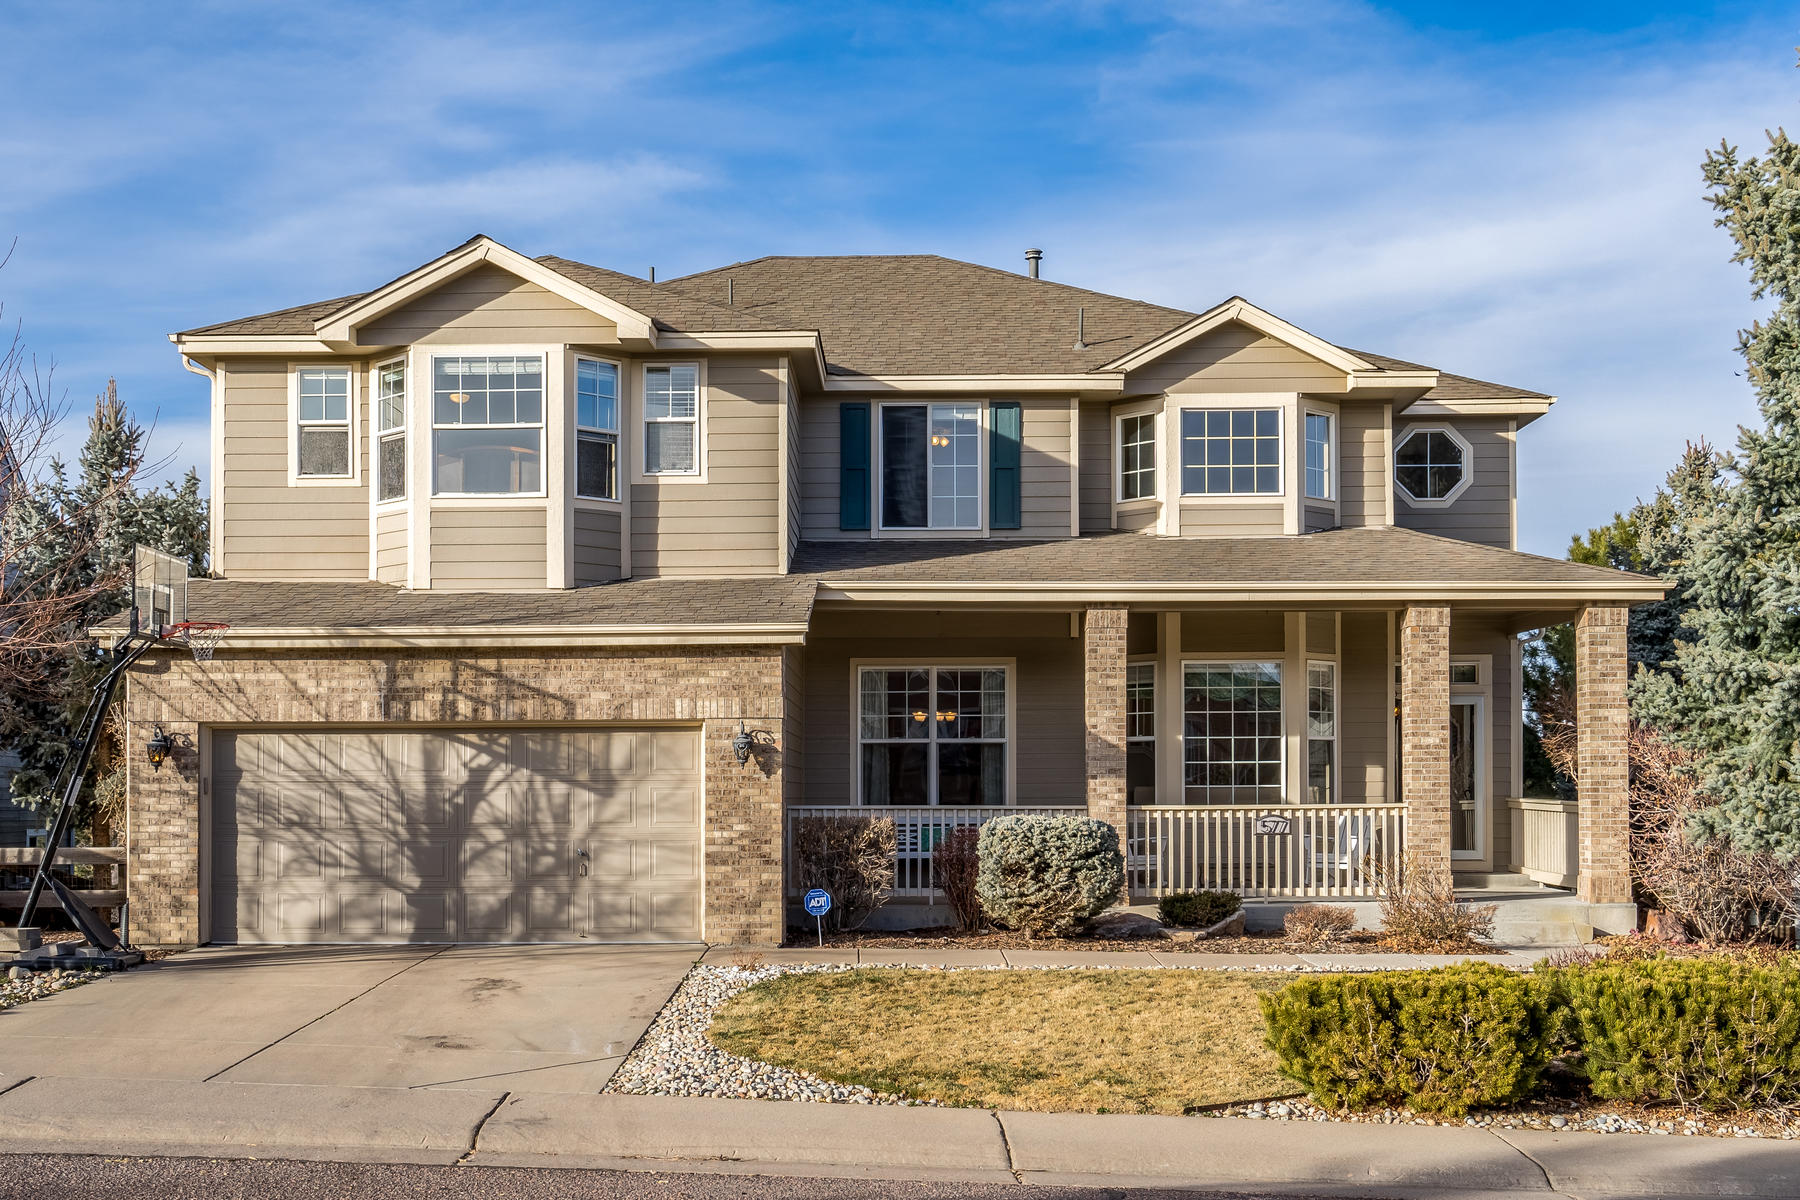 Single Family Home for Active at This spot in Castle Pines is about as nice a storybook space! 577 Stonemont Drive Castle Pines, Colorado 80108 United States